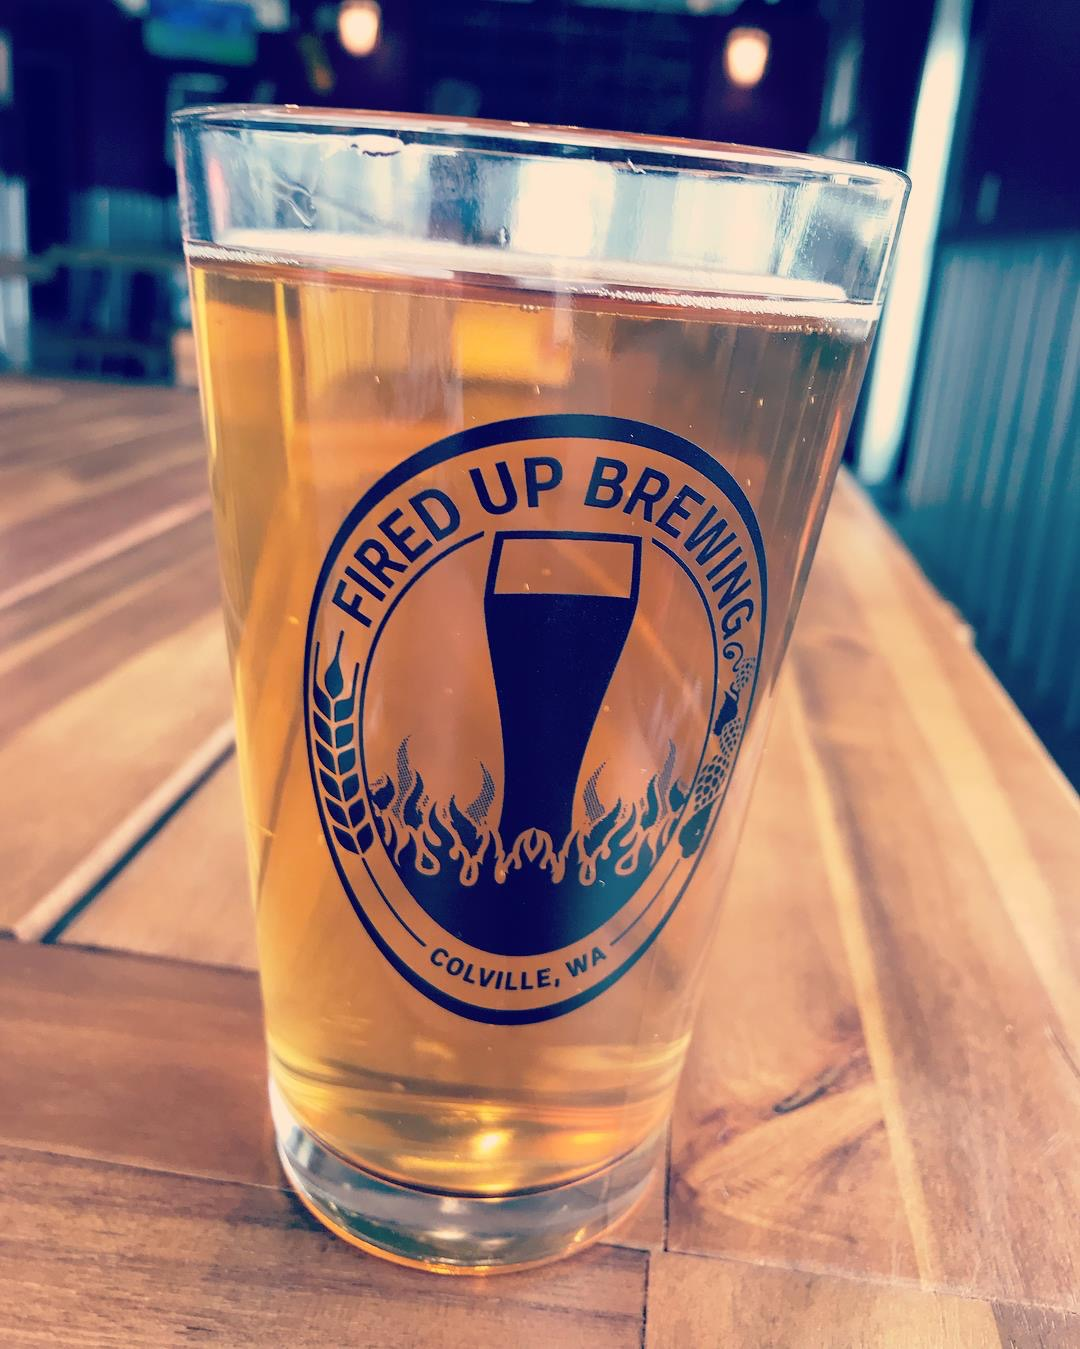 Fired Up's Bear Creek Blonde